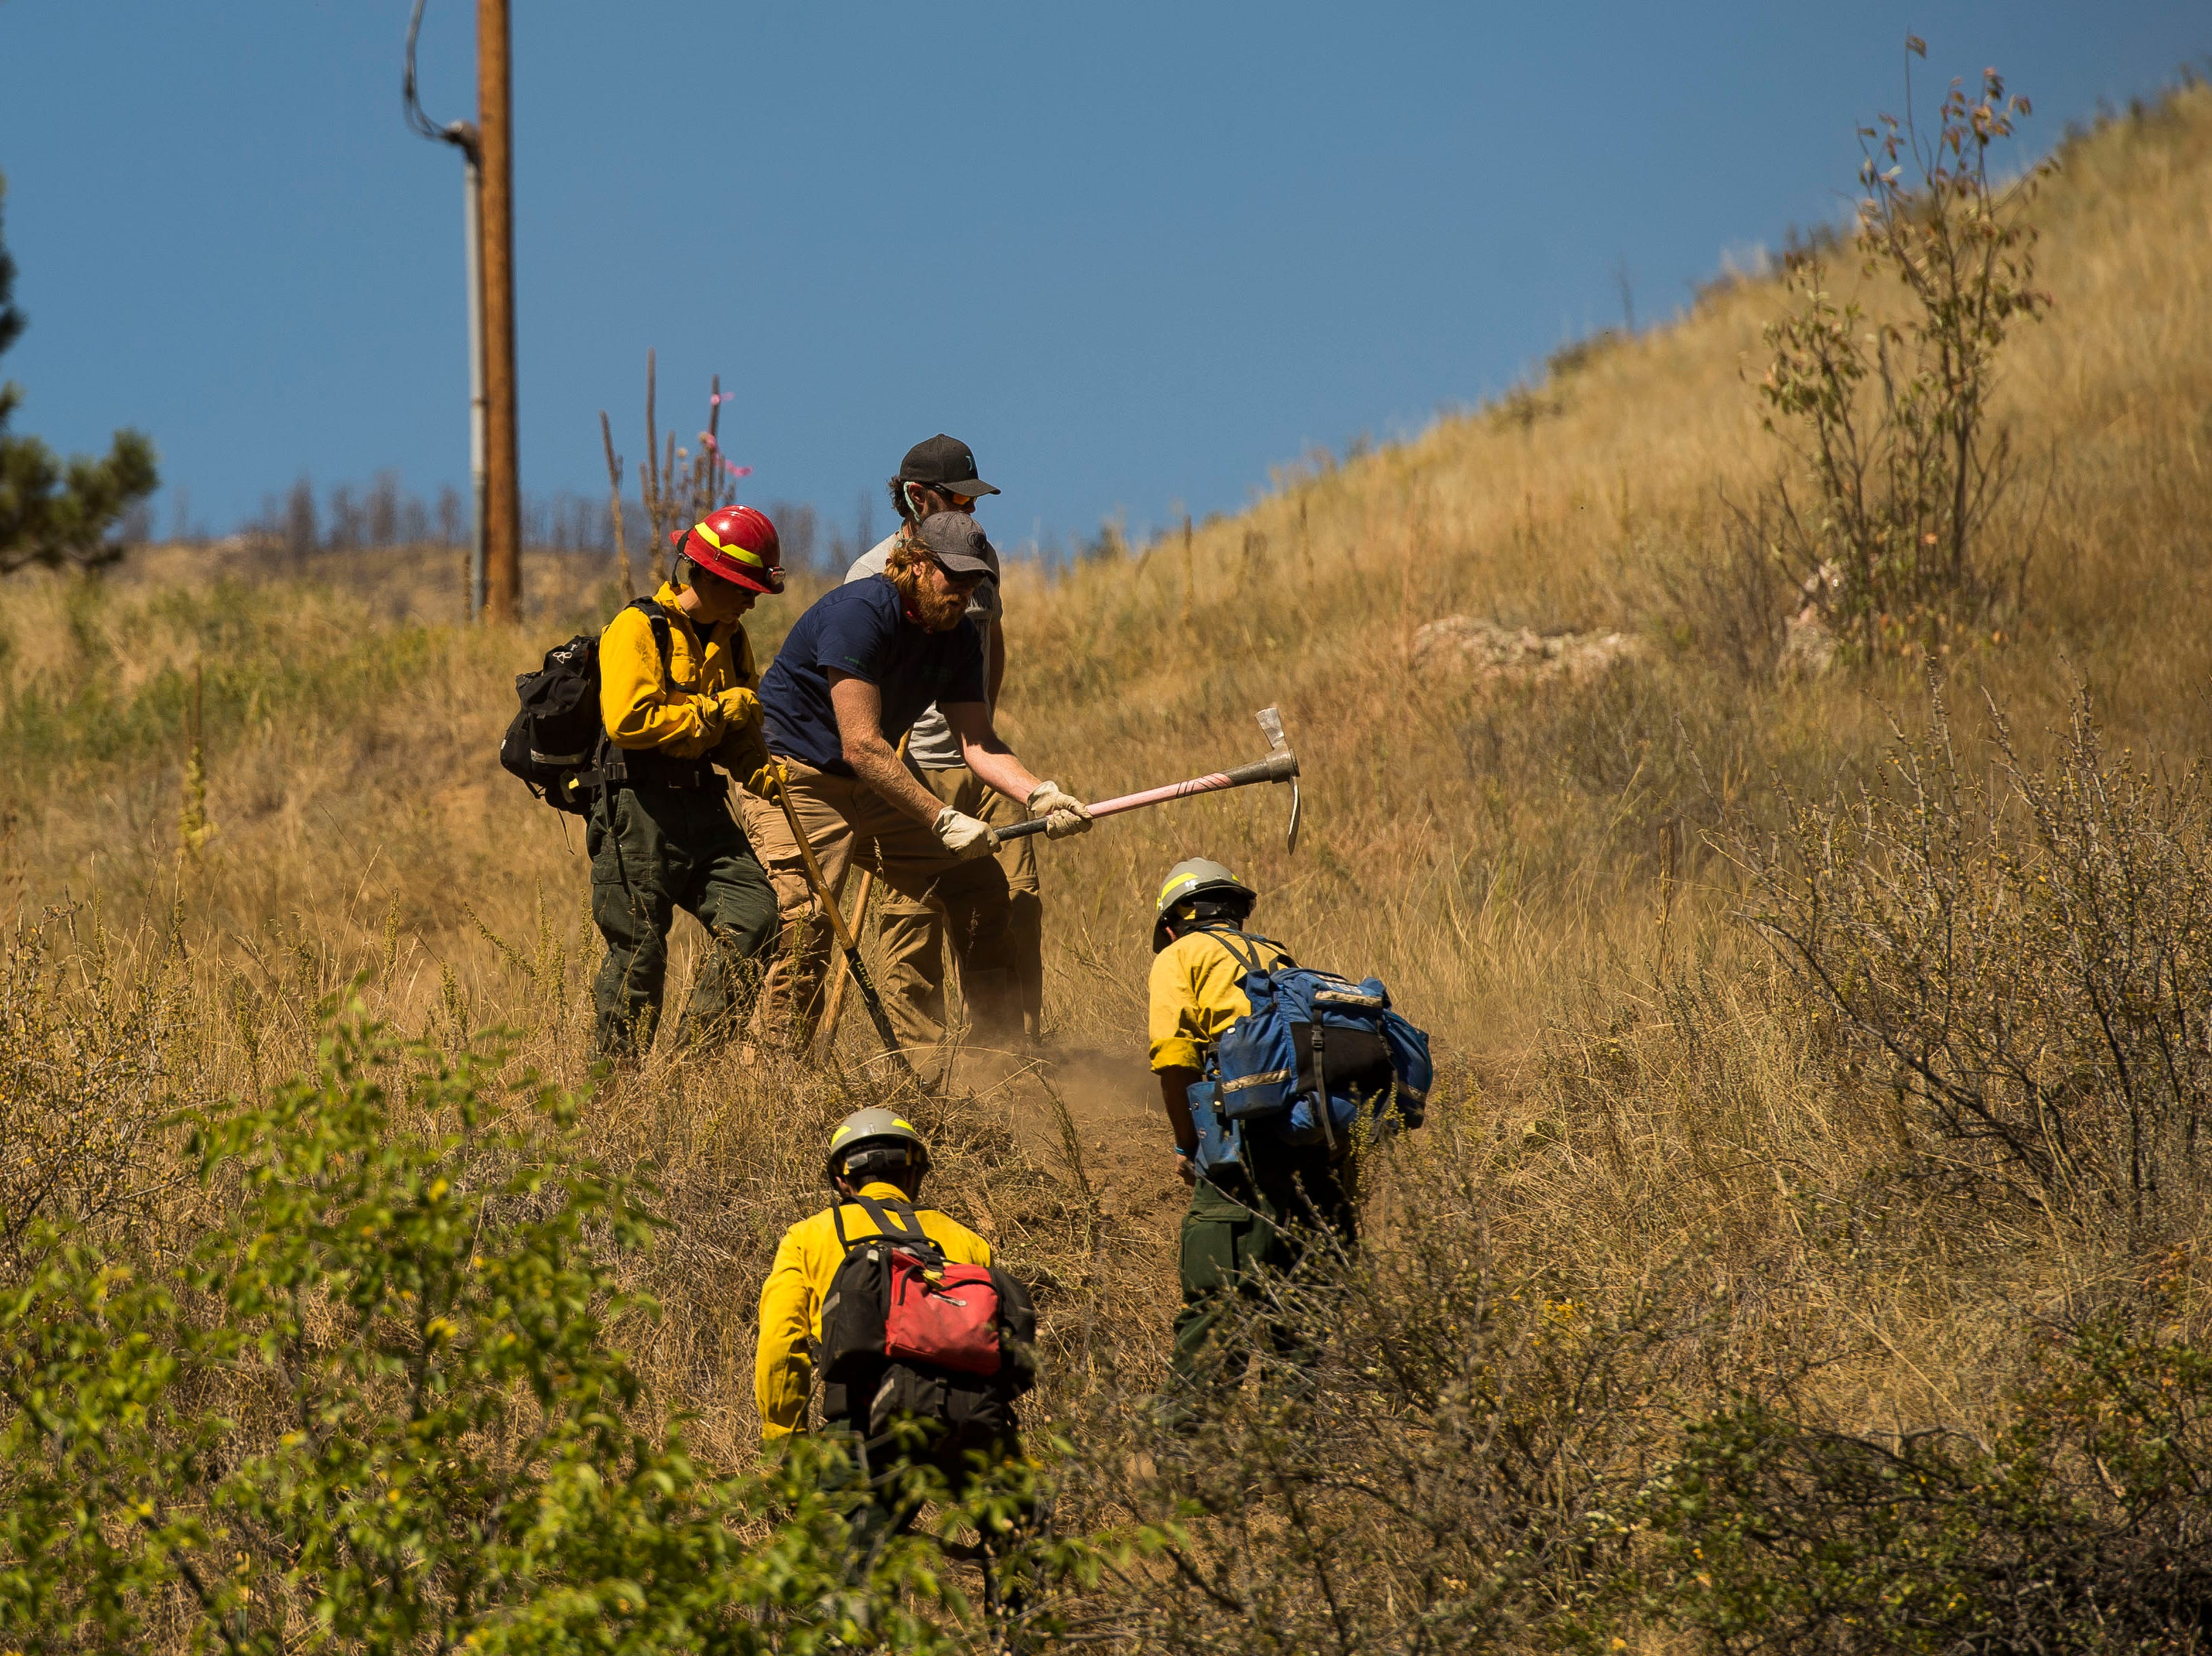 Backcountry firefighters dig a trench to act as a fireline up a hill from the Cache la Poudre River on Wednesday, Sept. 12, 2018, in the Poudre Canyon, near Seaman Reservoir in Larimer County, Colo.